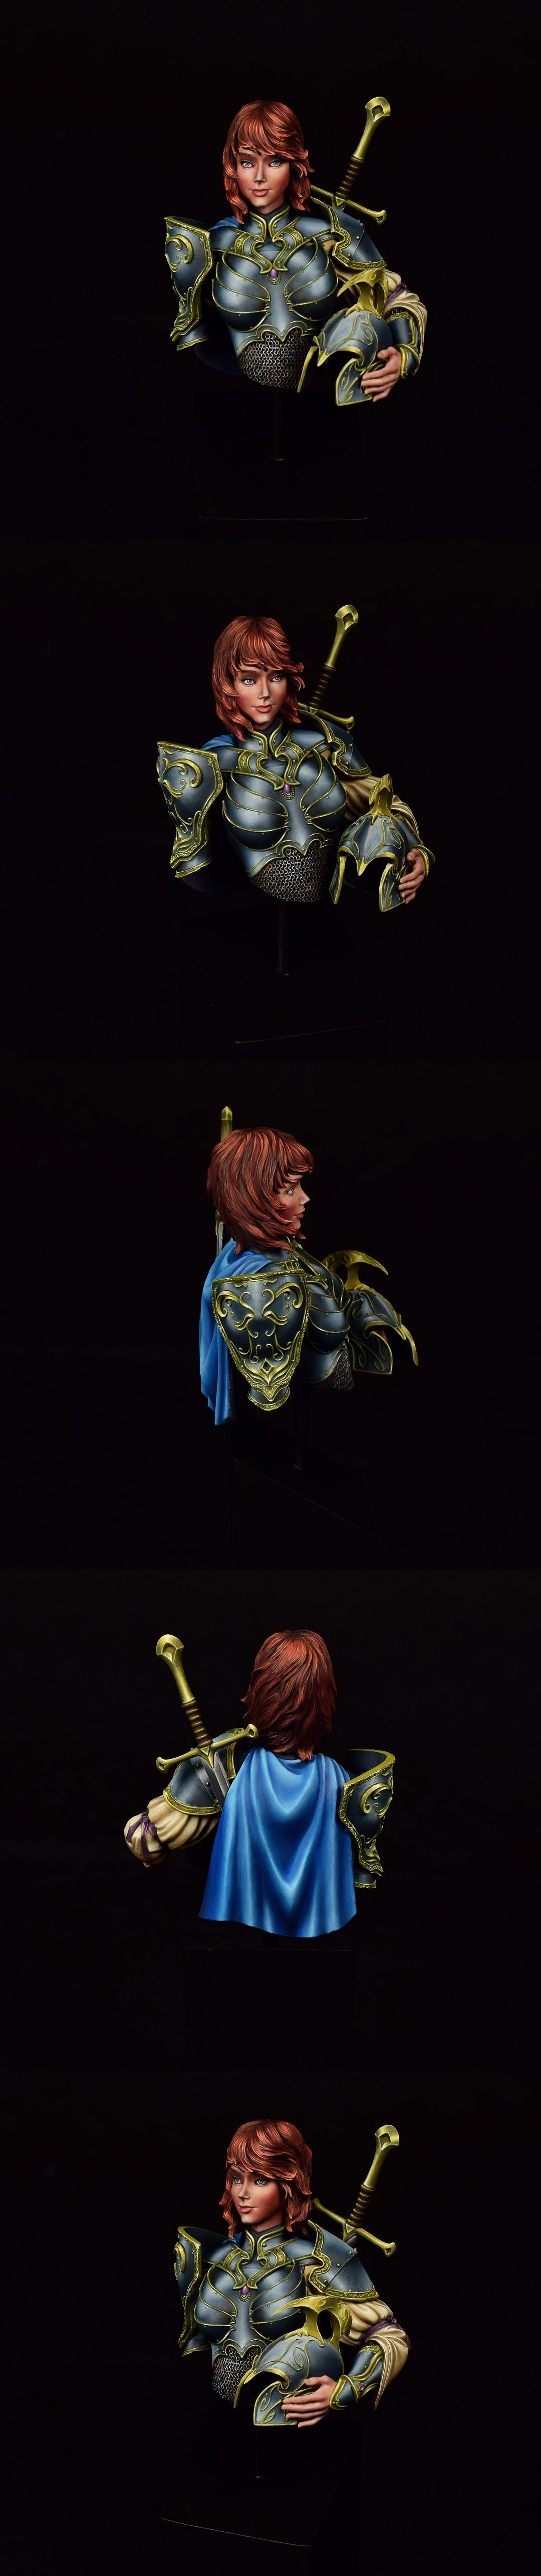 Excelsy, Female Knight, Non-Metallic Metal